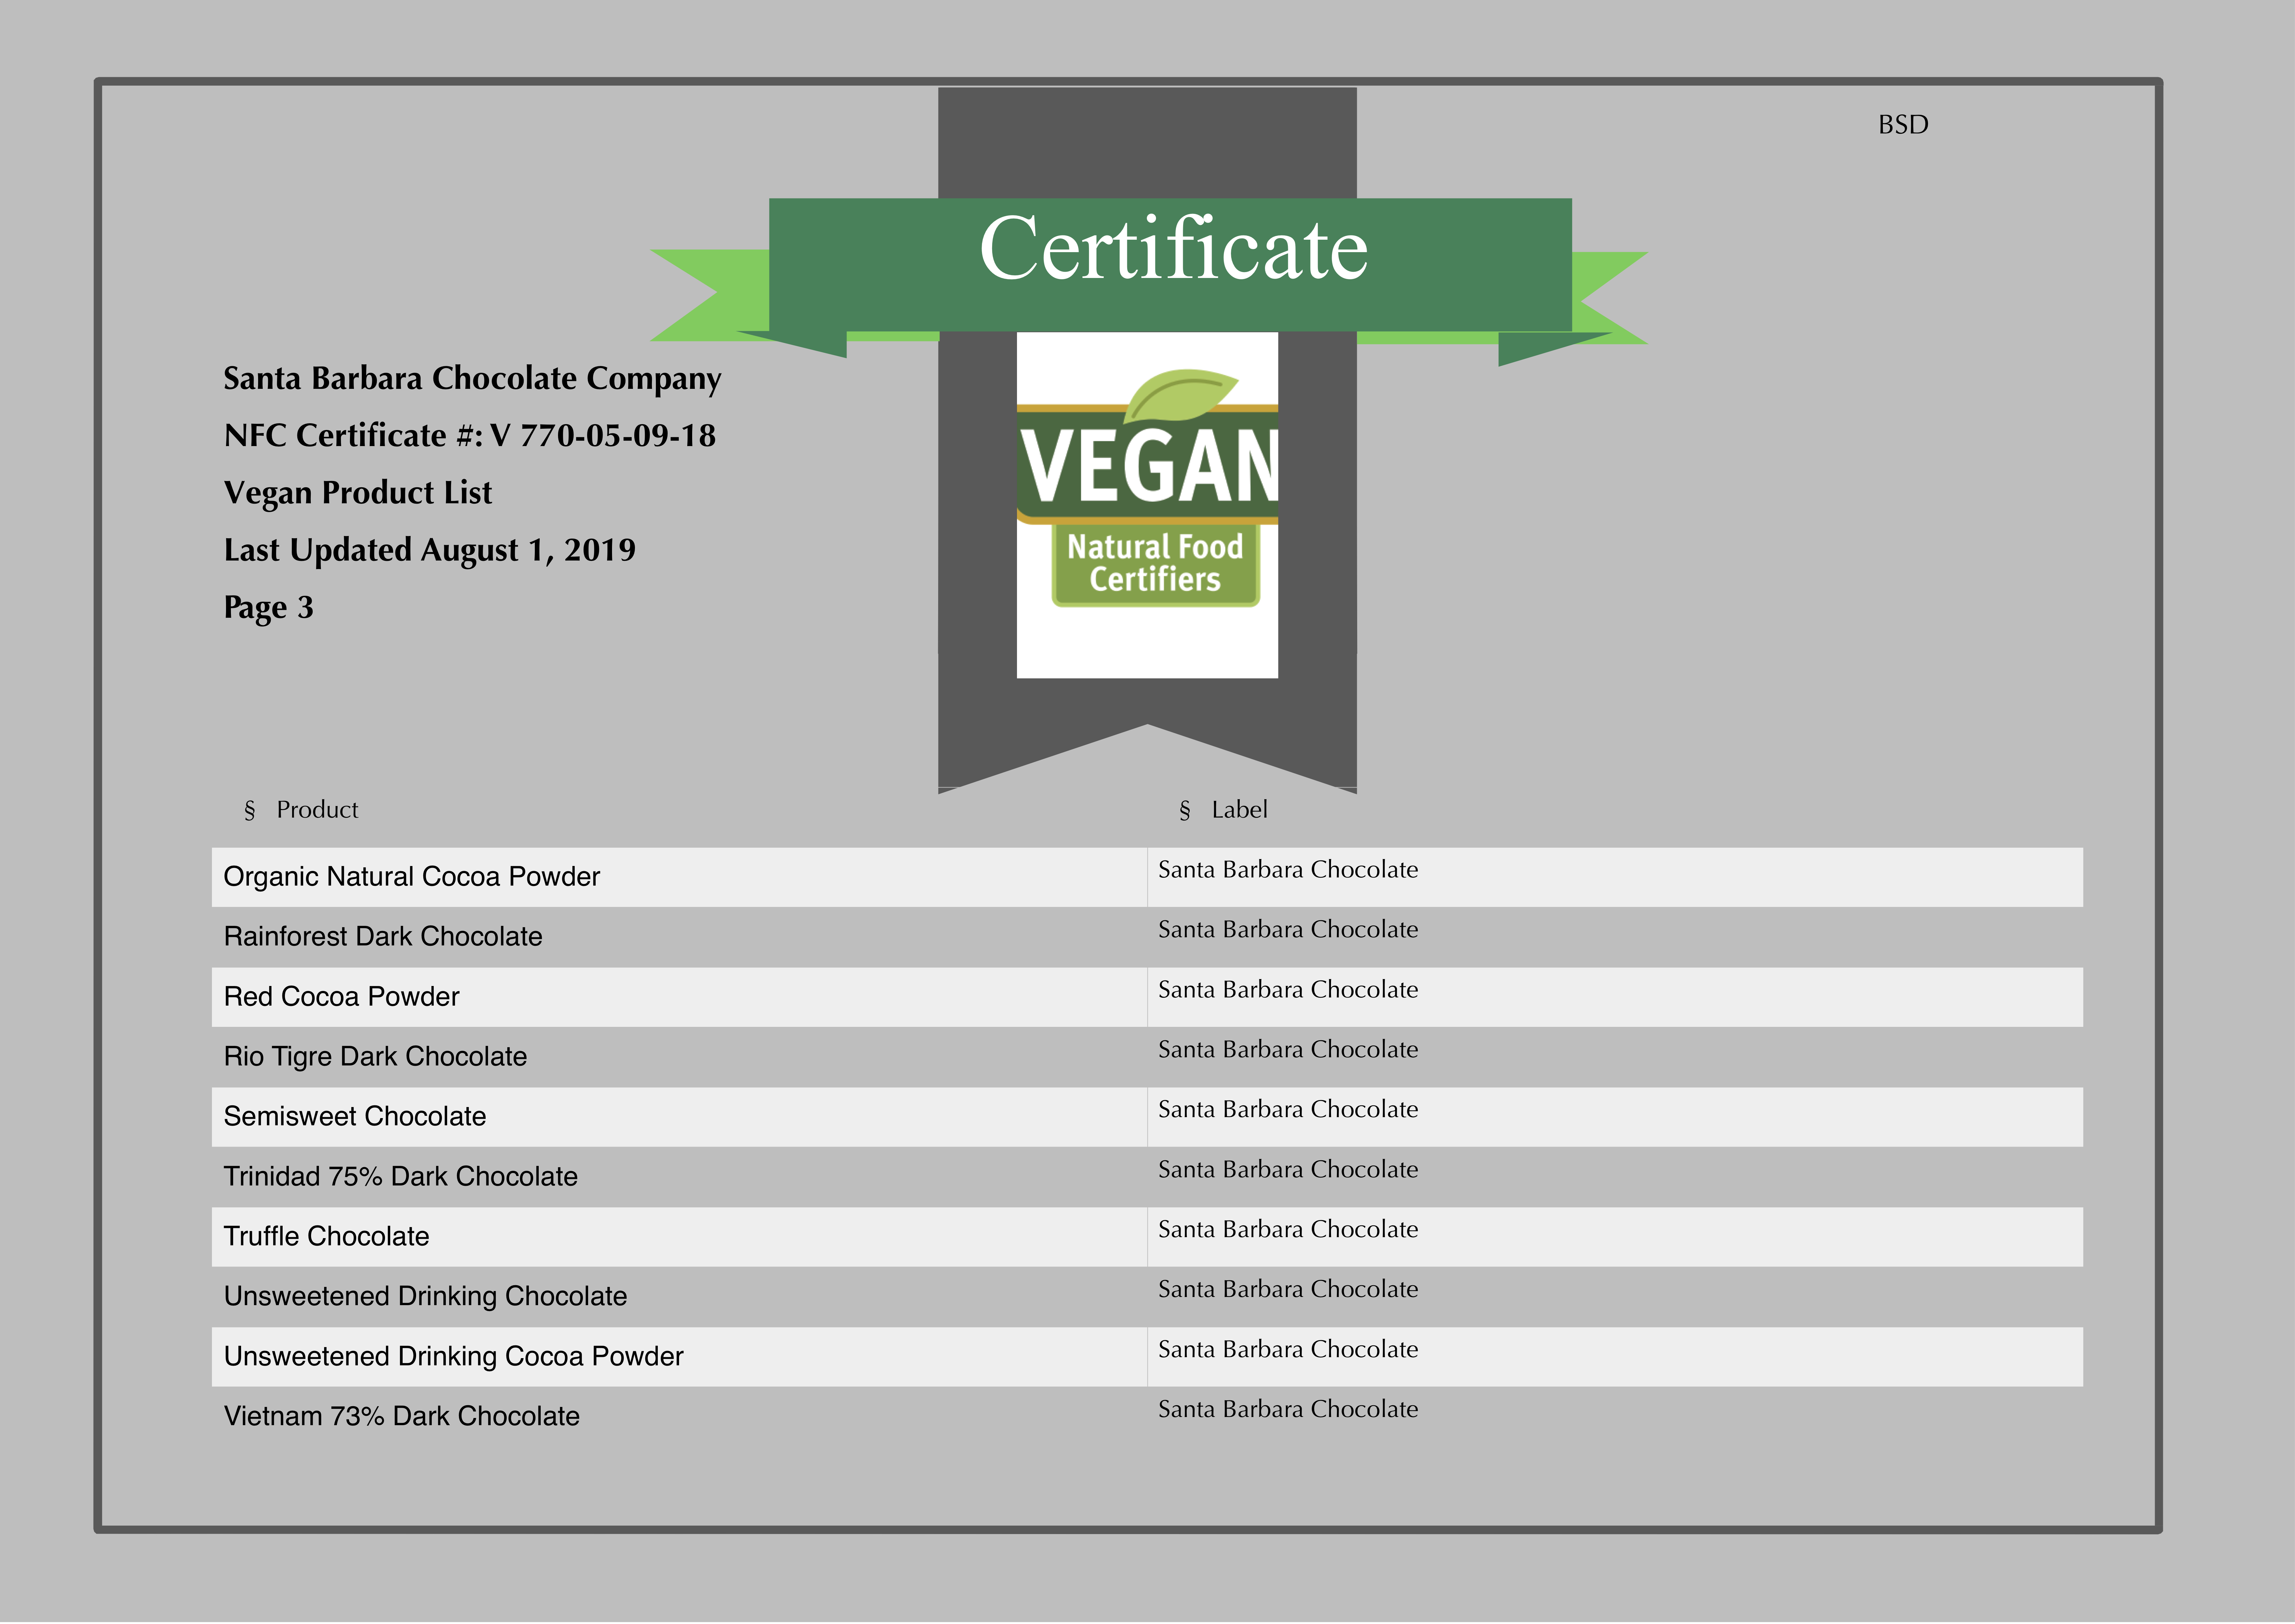 santa-barbara-chocolate-vegan-certification-2019-2020-page-4.jpg